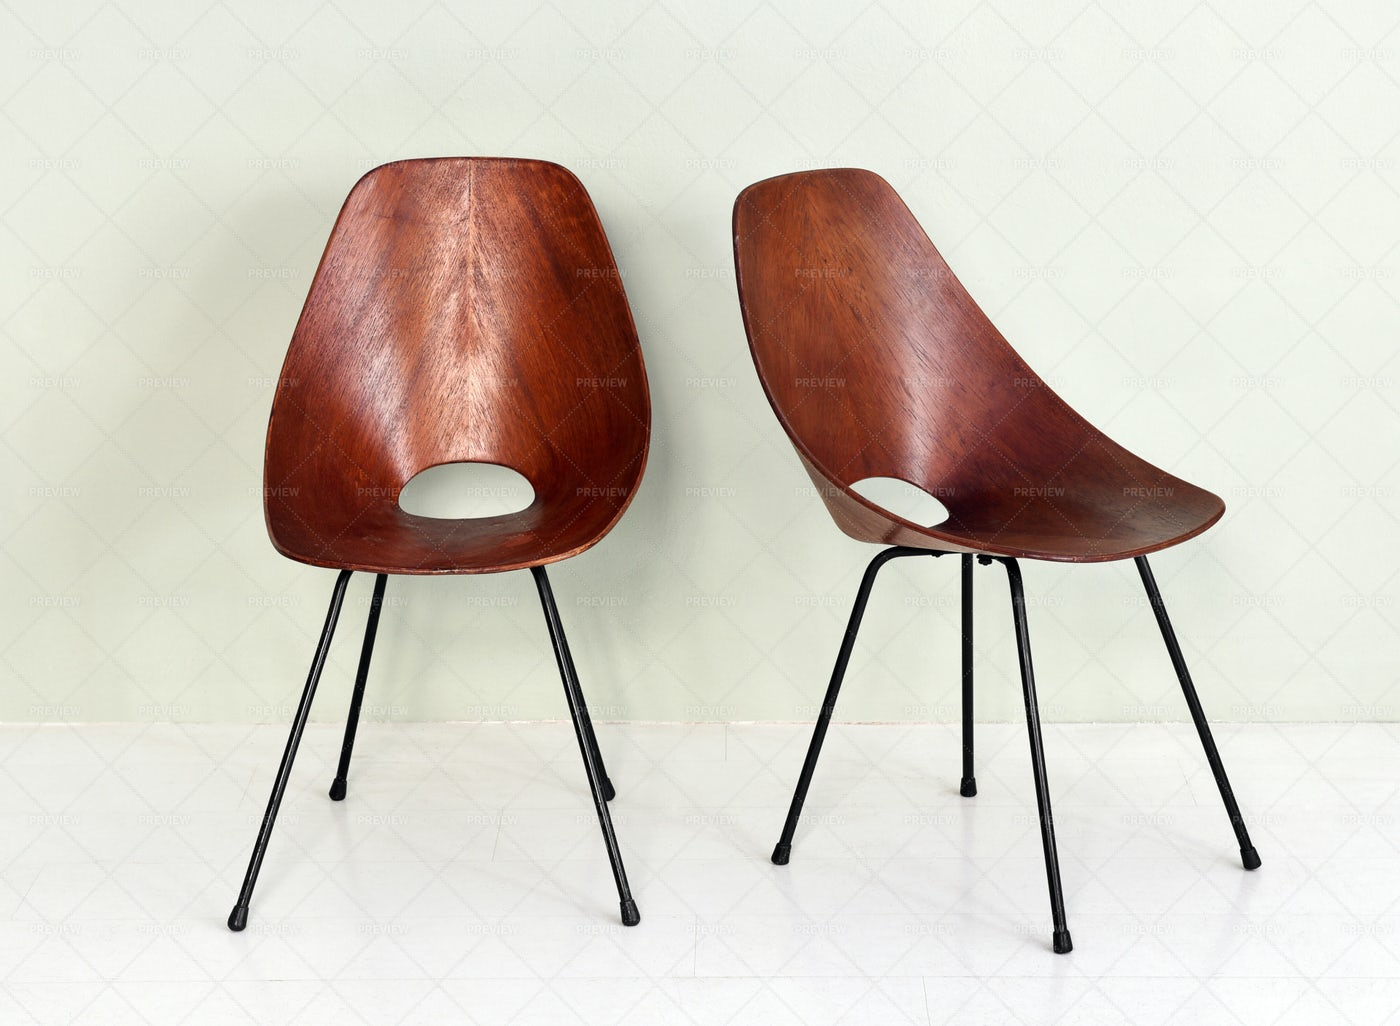 Vintage Wooden Chairs: Stock Photos